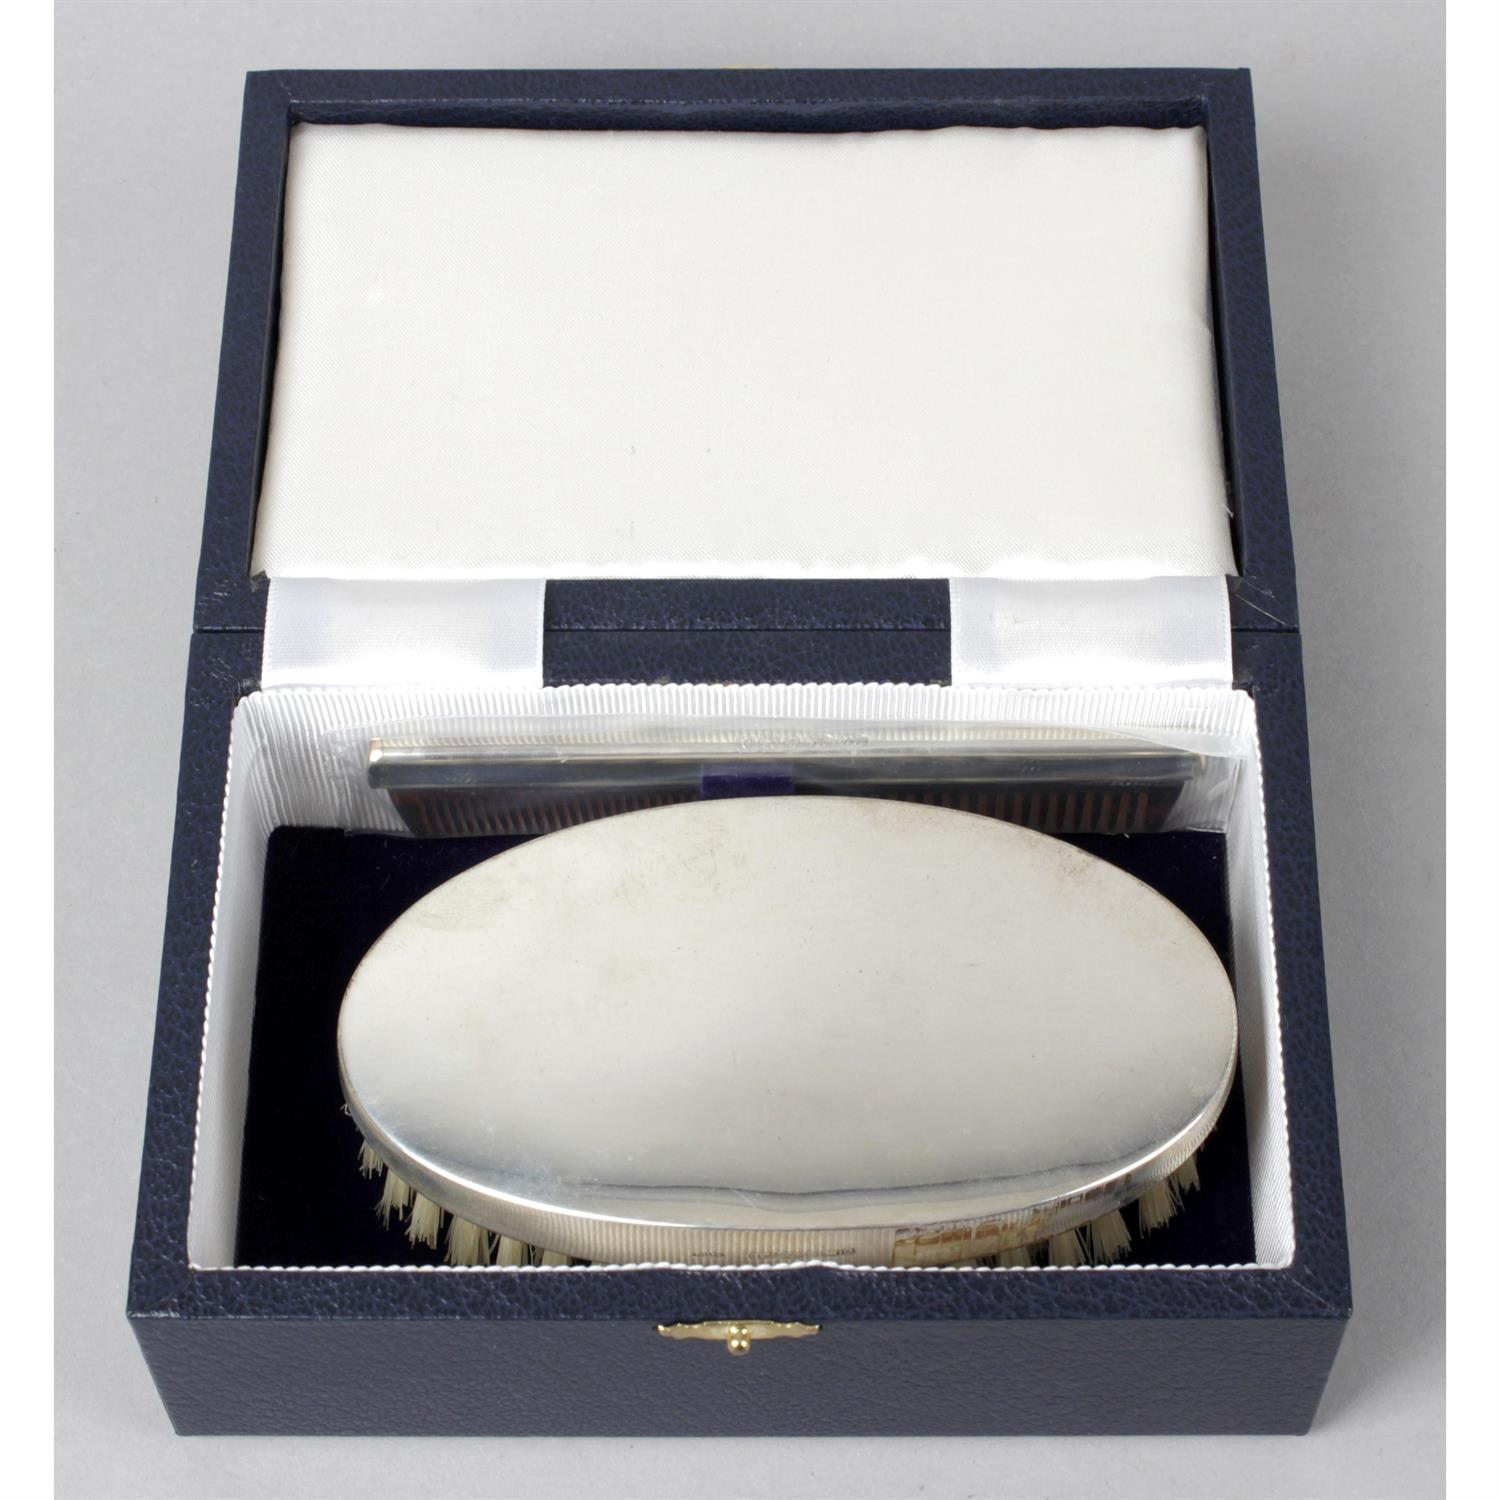 A modern silver mounted hand mirror; together with a cased silver mounted military brush and comb - Image 2 of 2